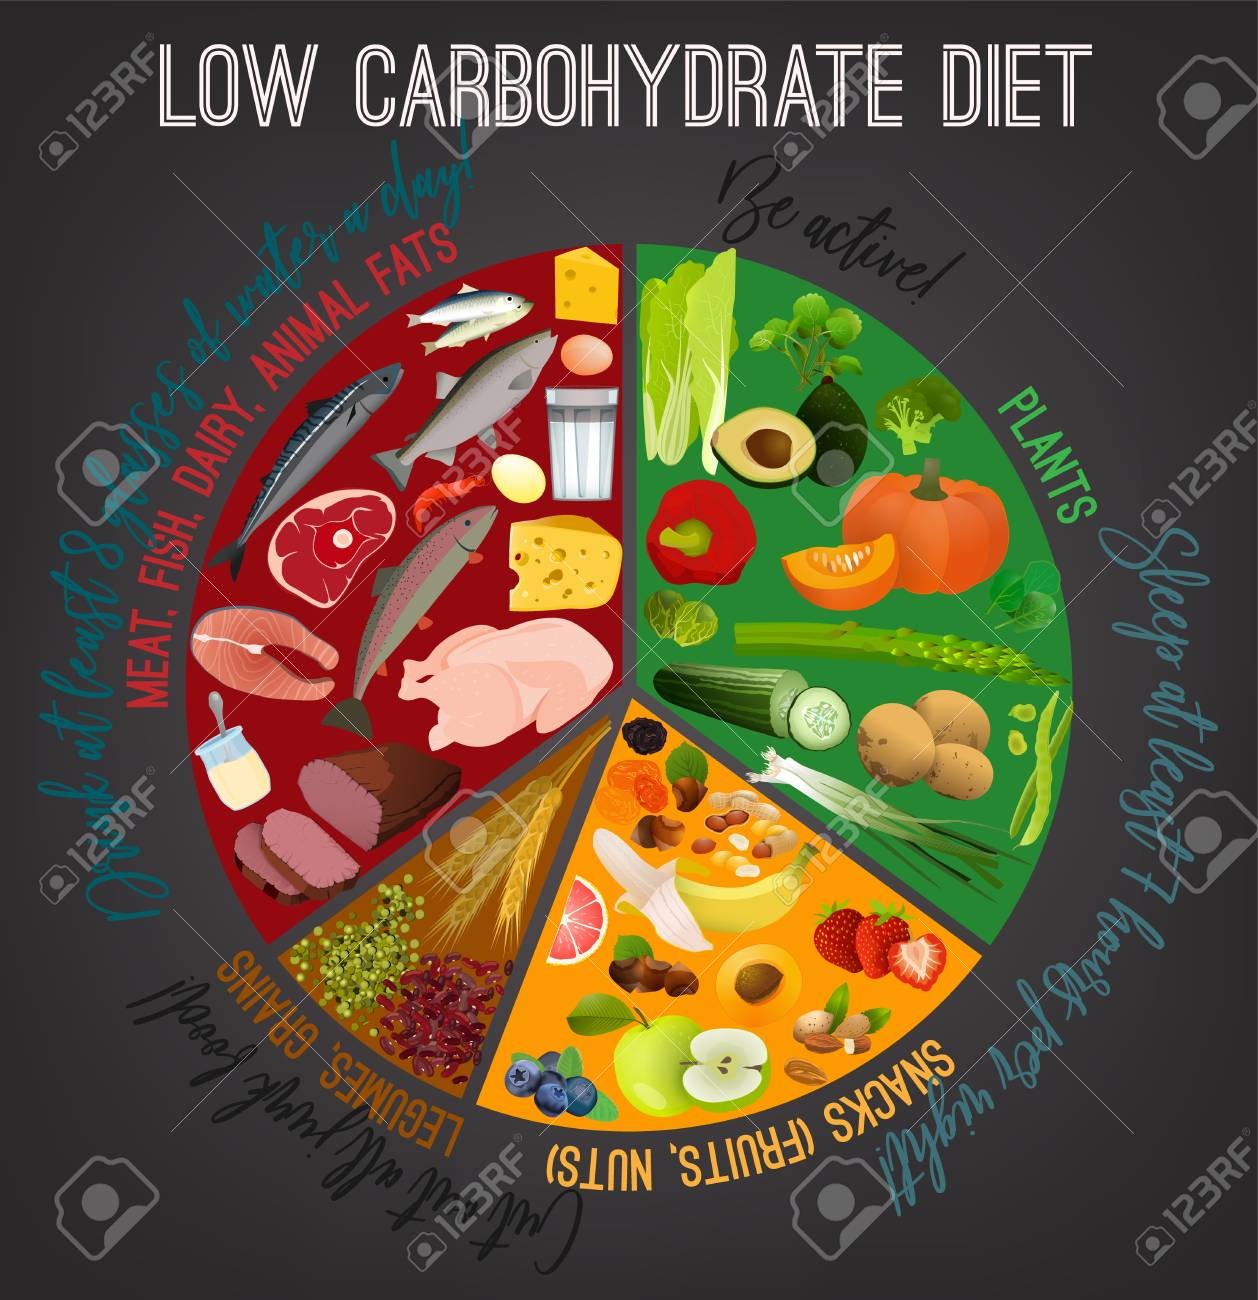 Low carbohydrate diet poster  Colourful vector illustration isolated